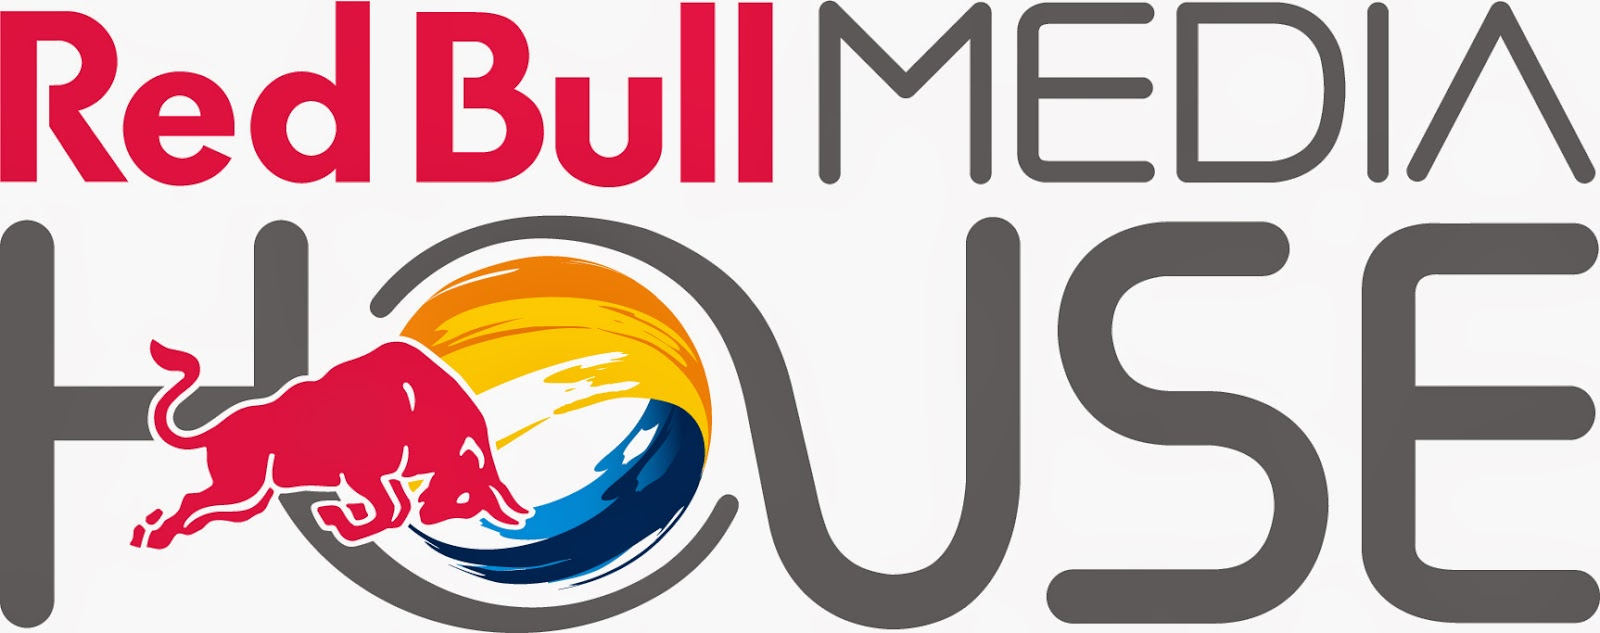 Red Bull clipart bull brand Media Red Brands New Companies/MCNs?